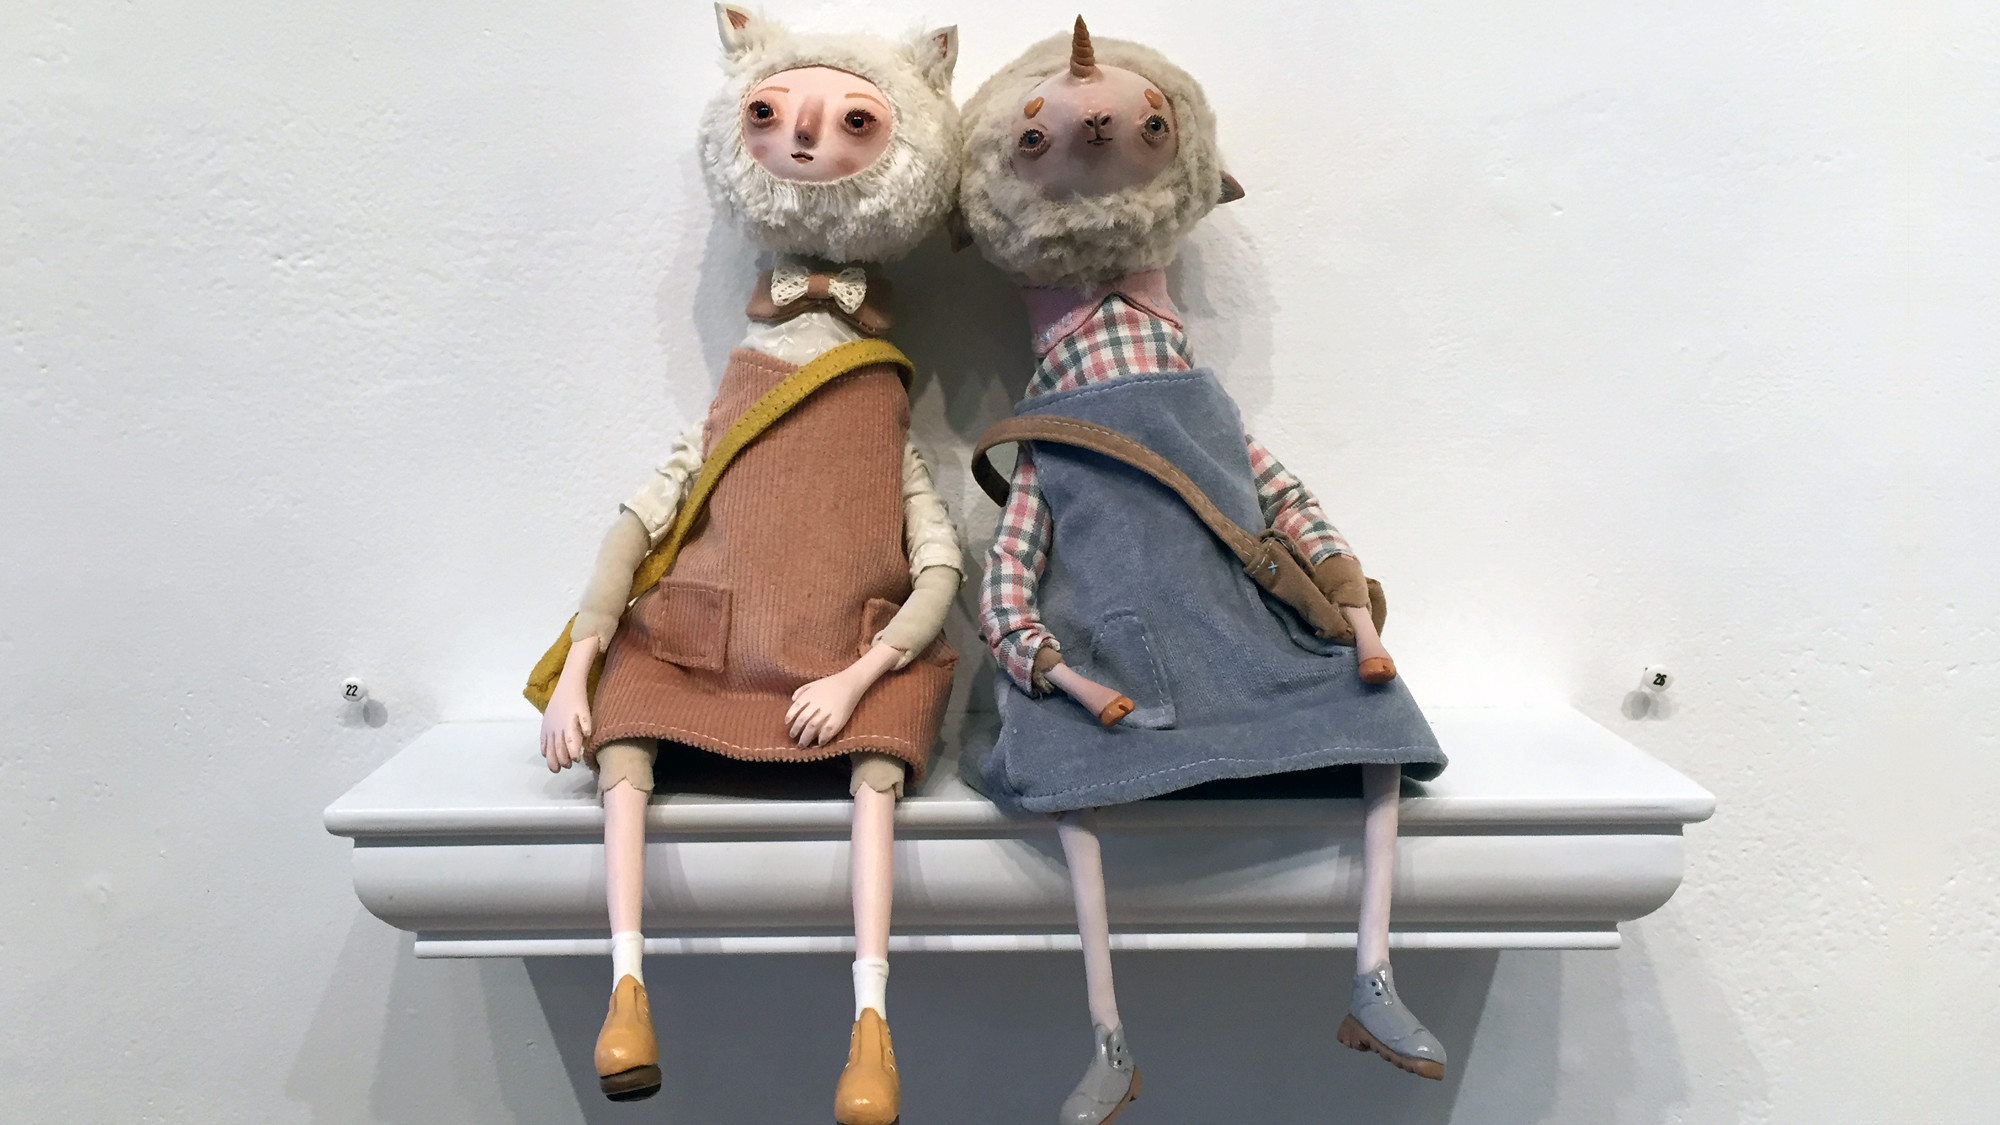 Stitched 2 Exhibition - Claymate Creatures' Anna the Fox &